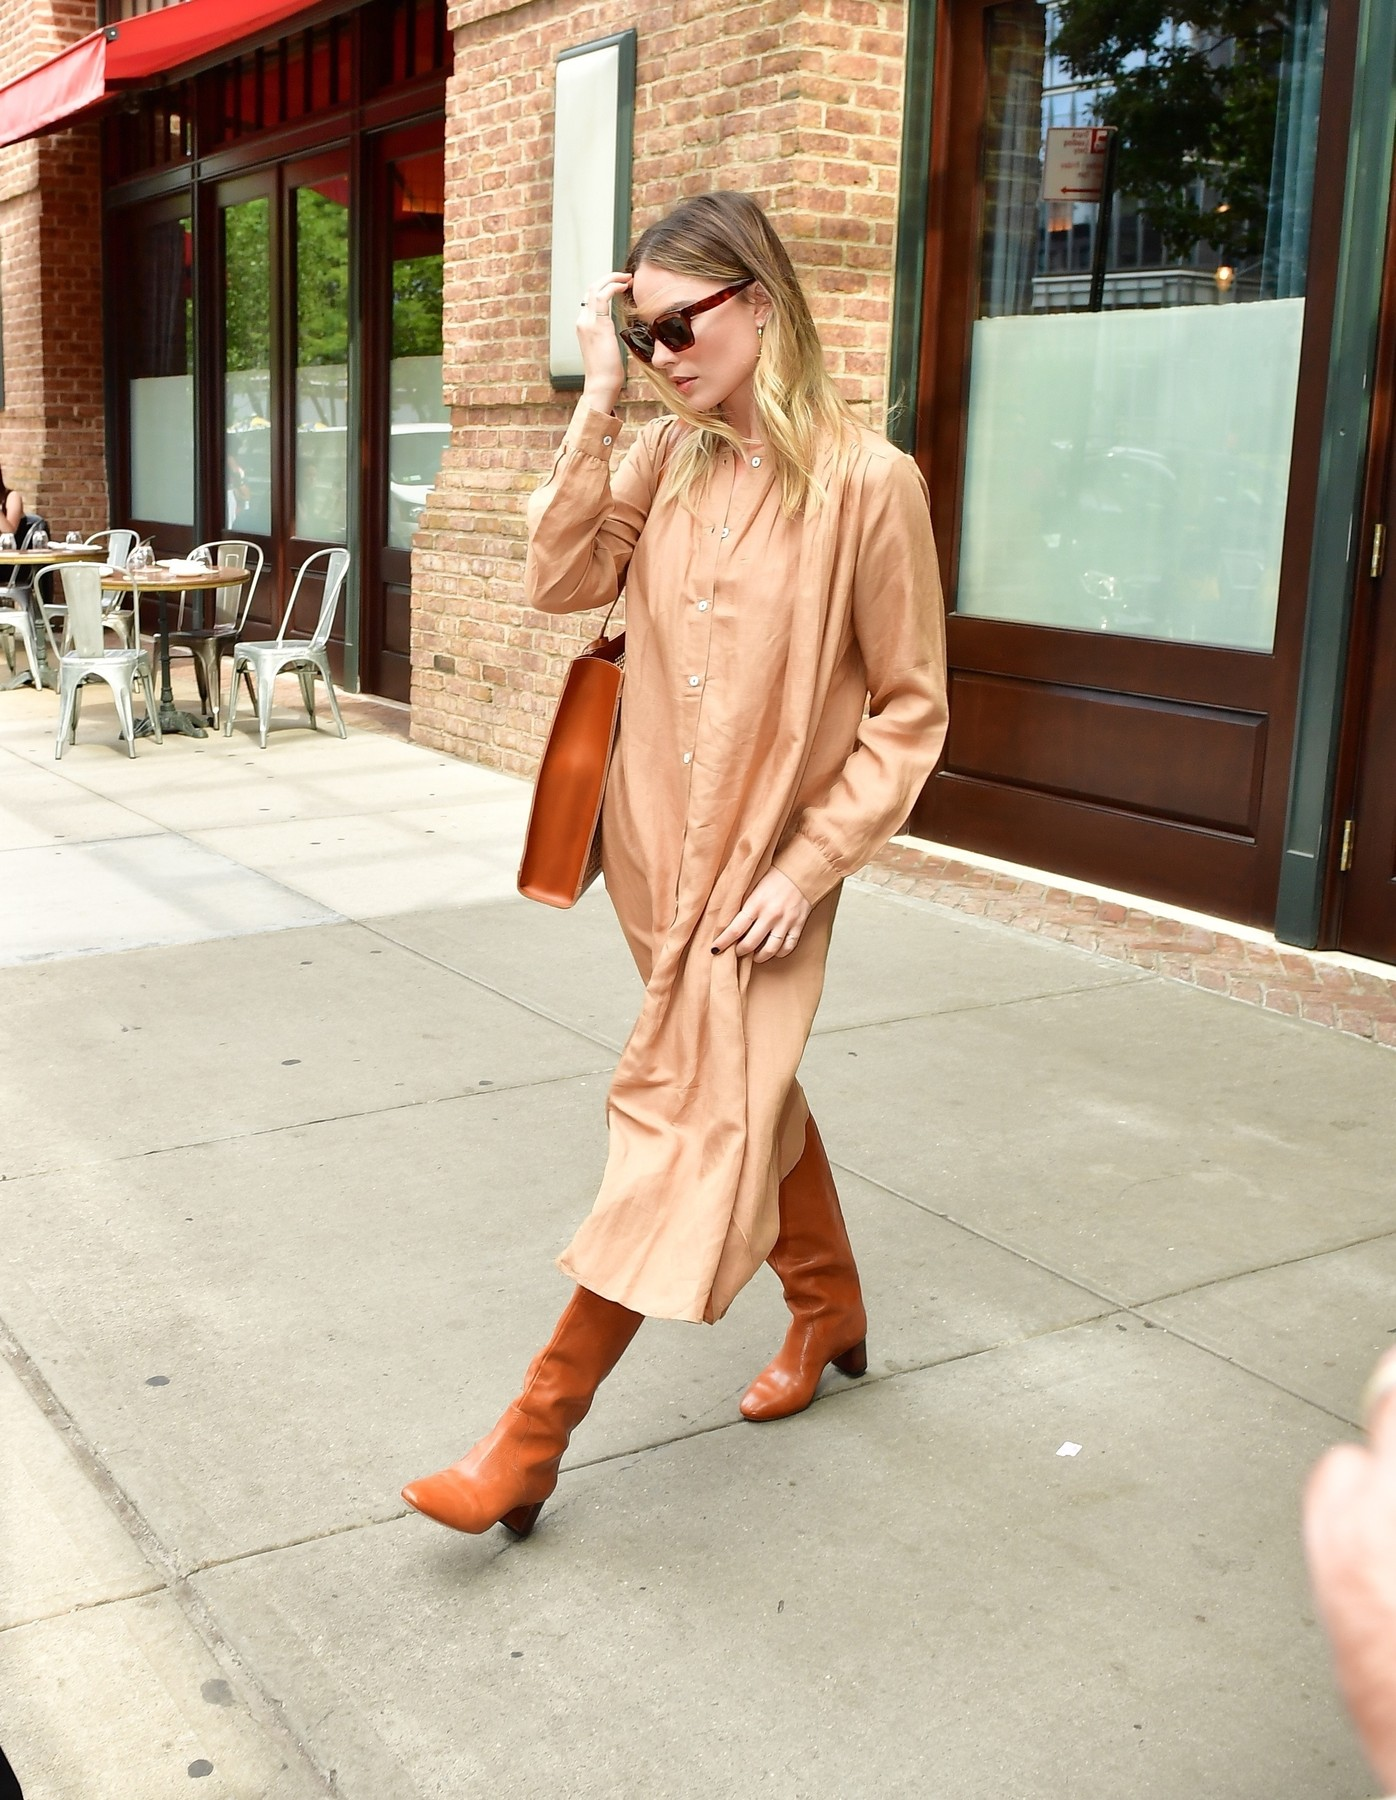 New York, NY  - Margot Robbie quickly hops into her ride as she leaves her hotel in New York. Margot looks Fall ready in a long beige trench coat and burnt orange leather boots.  *UK Clients - Pictures Containing Children Please Pixelate Face Prior To Publication*, Image: 475506162, License: Rights-managed, Restrictions: , Model Release: no, Credit line: PapCulture / BACKGRID / Backgrid USA / Profimedia